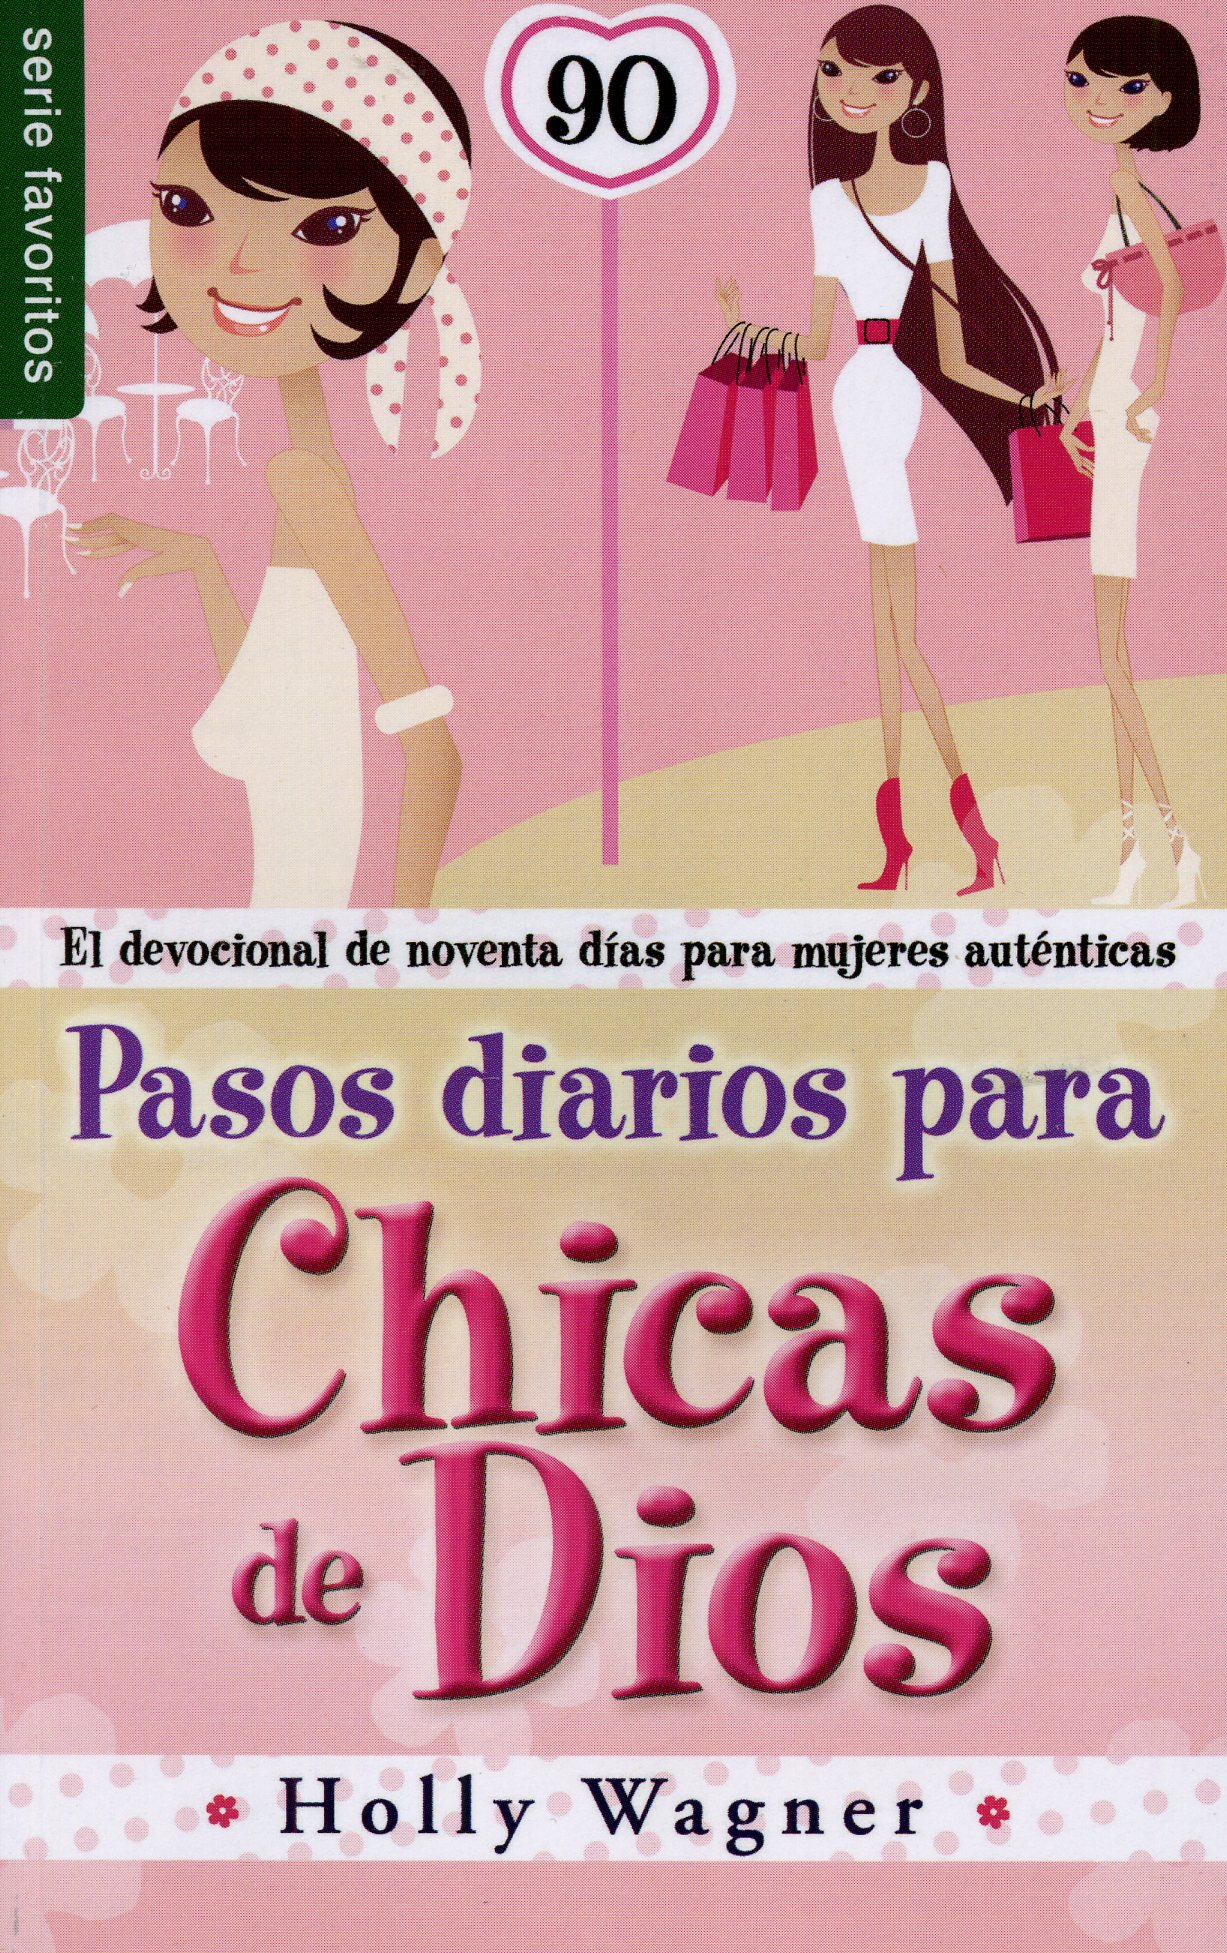 Libros Para Chicas Editorial Unilit Clc Mexico